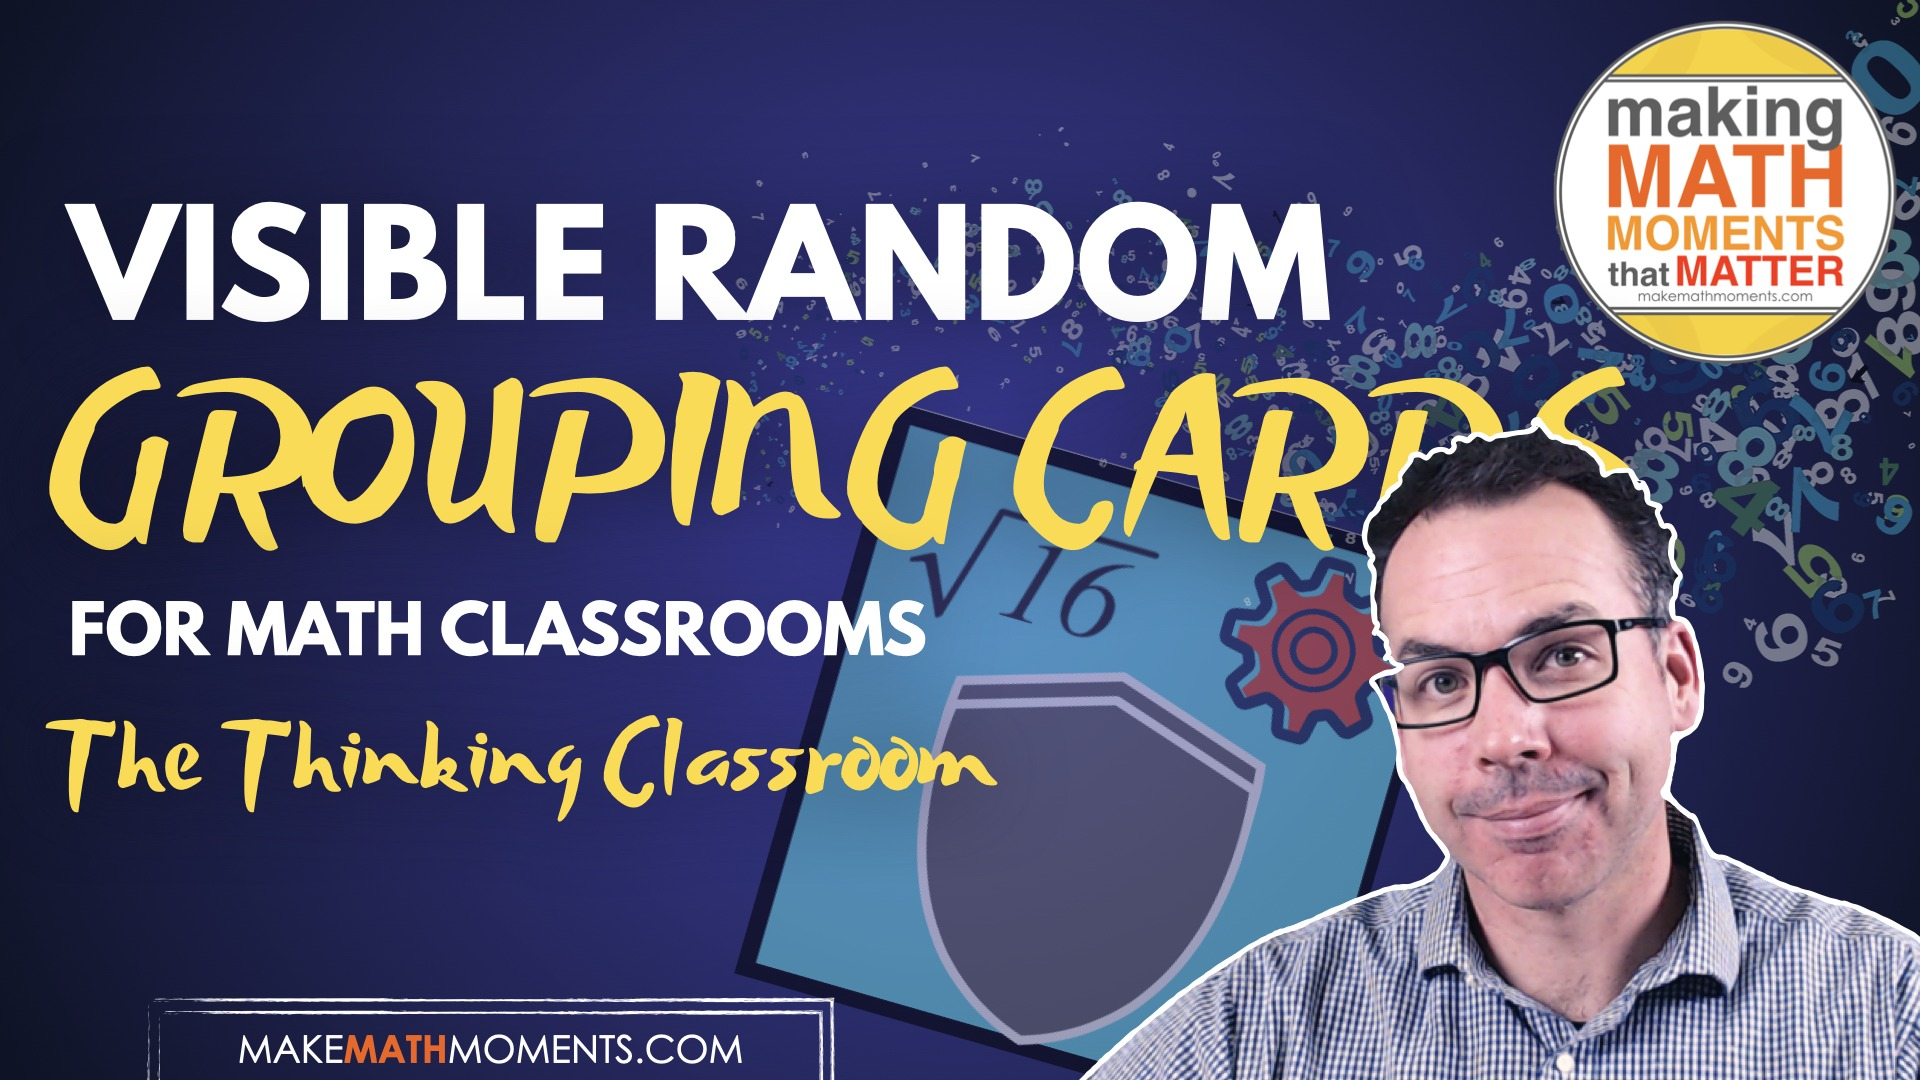 Free Random Grouping Cards For Visible Random Groupings